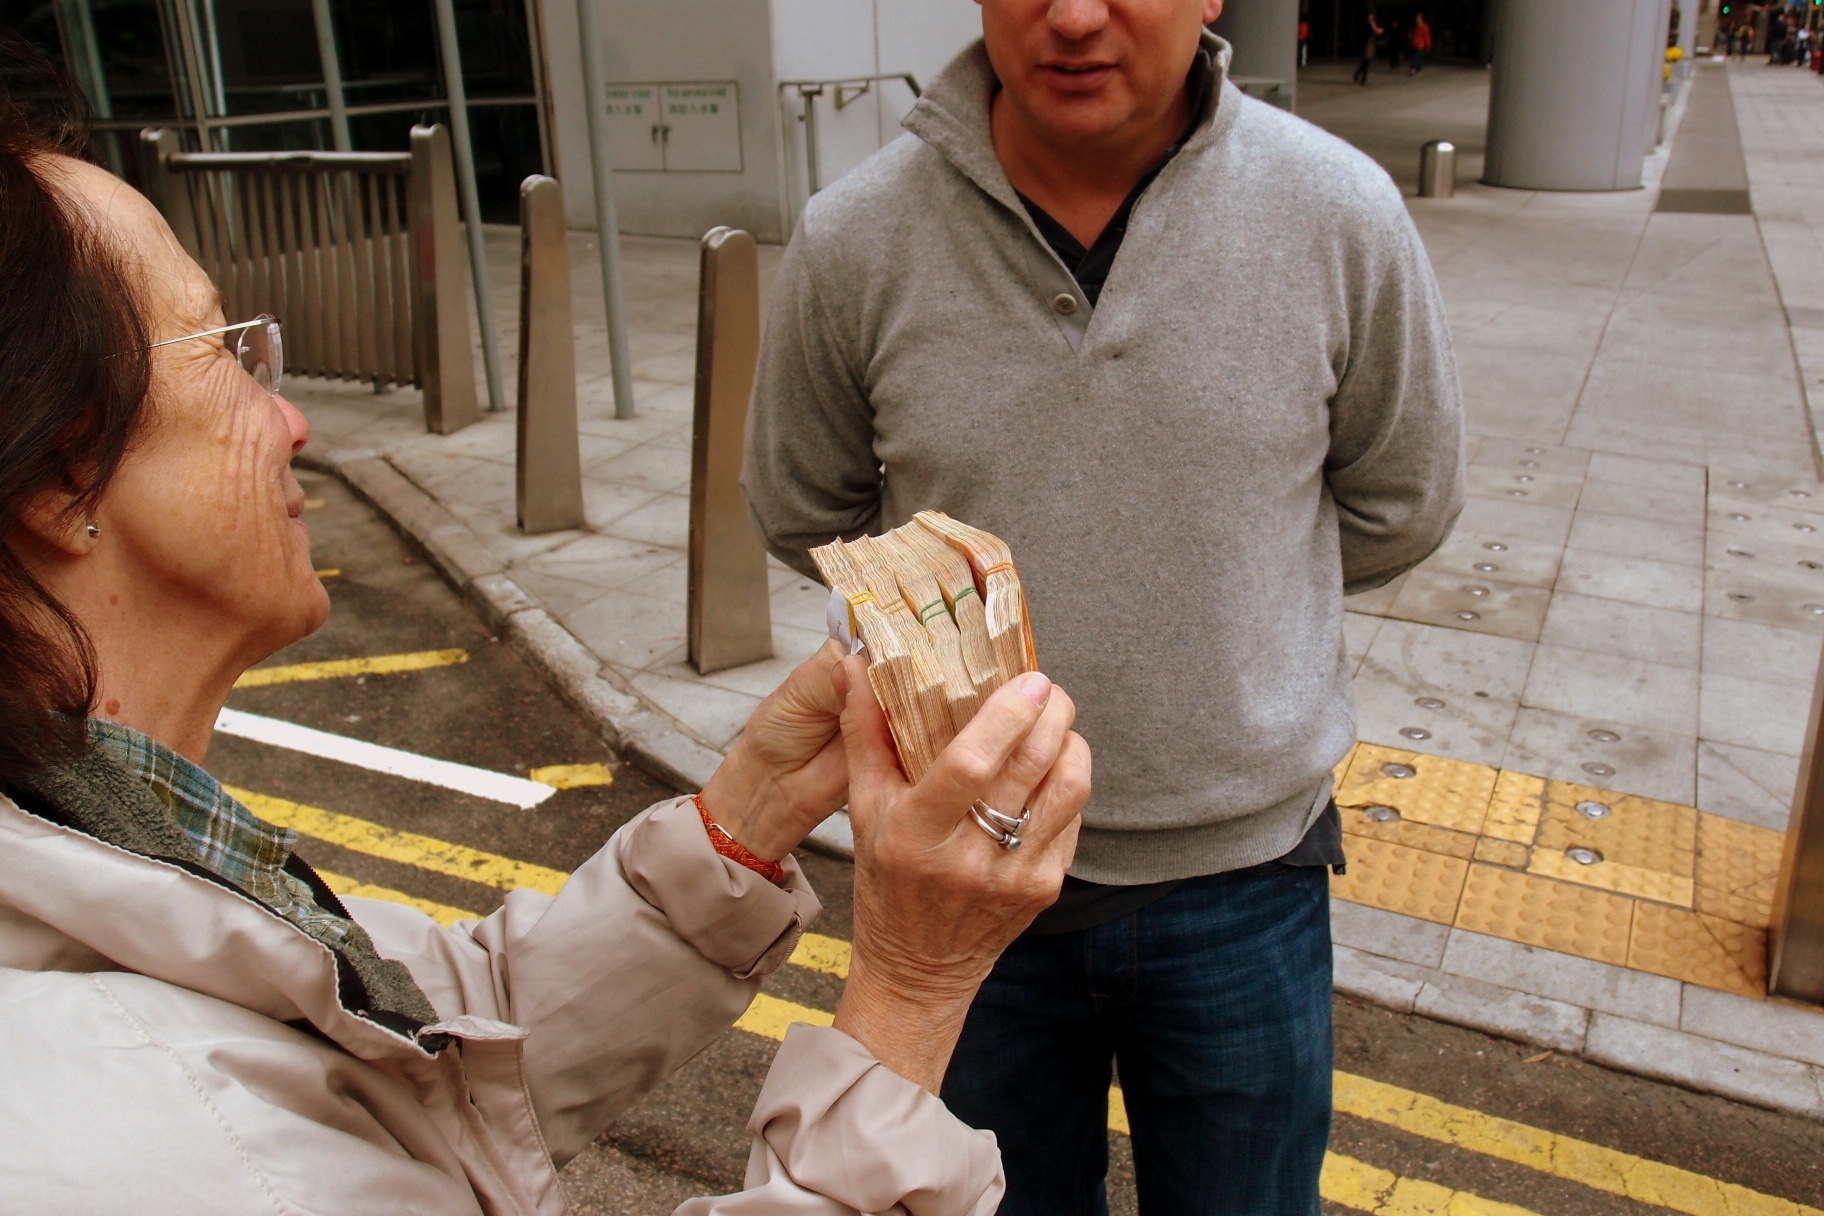 A slightly drunk expat jigs in the street with his winnings on the horses...